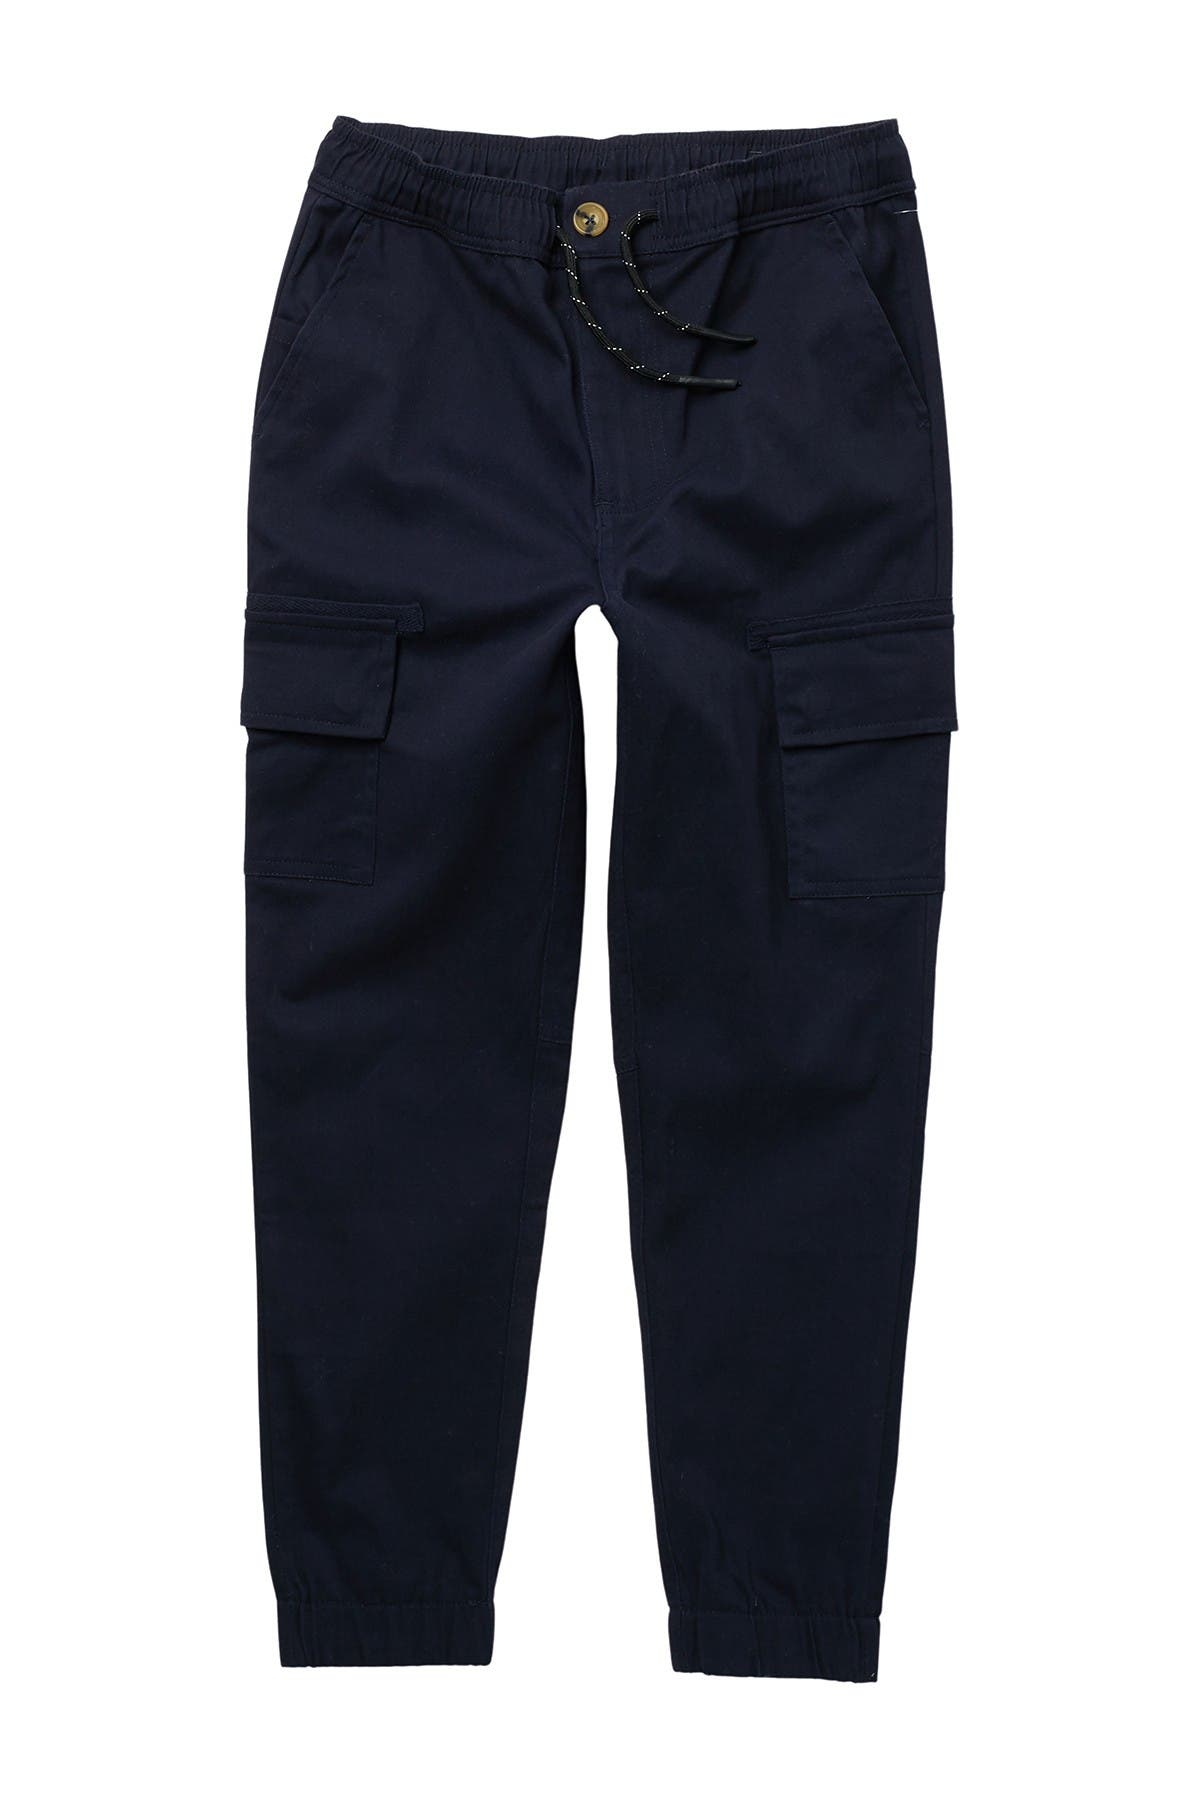 Image of Sovereign Code Mccartney Cargo Joggers